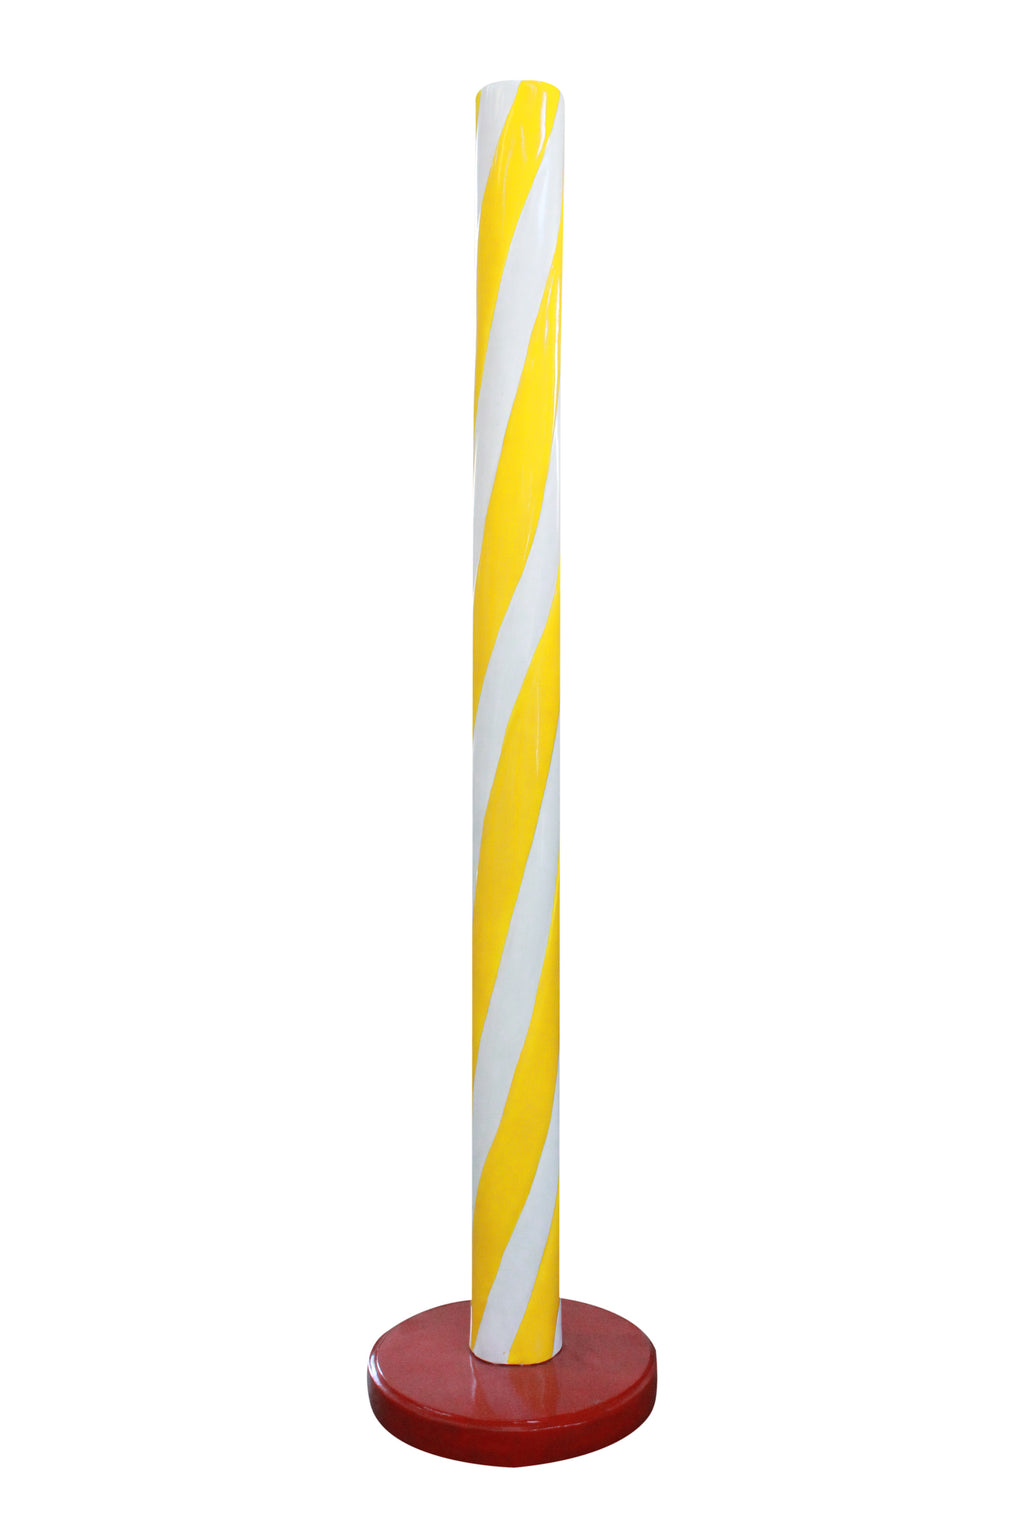 Candy Stick Yellow Jumbo Over Sized Prop Decor Statue - LM Treasures Prop Rentals